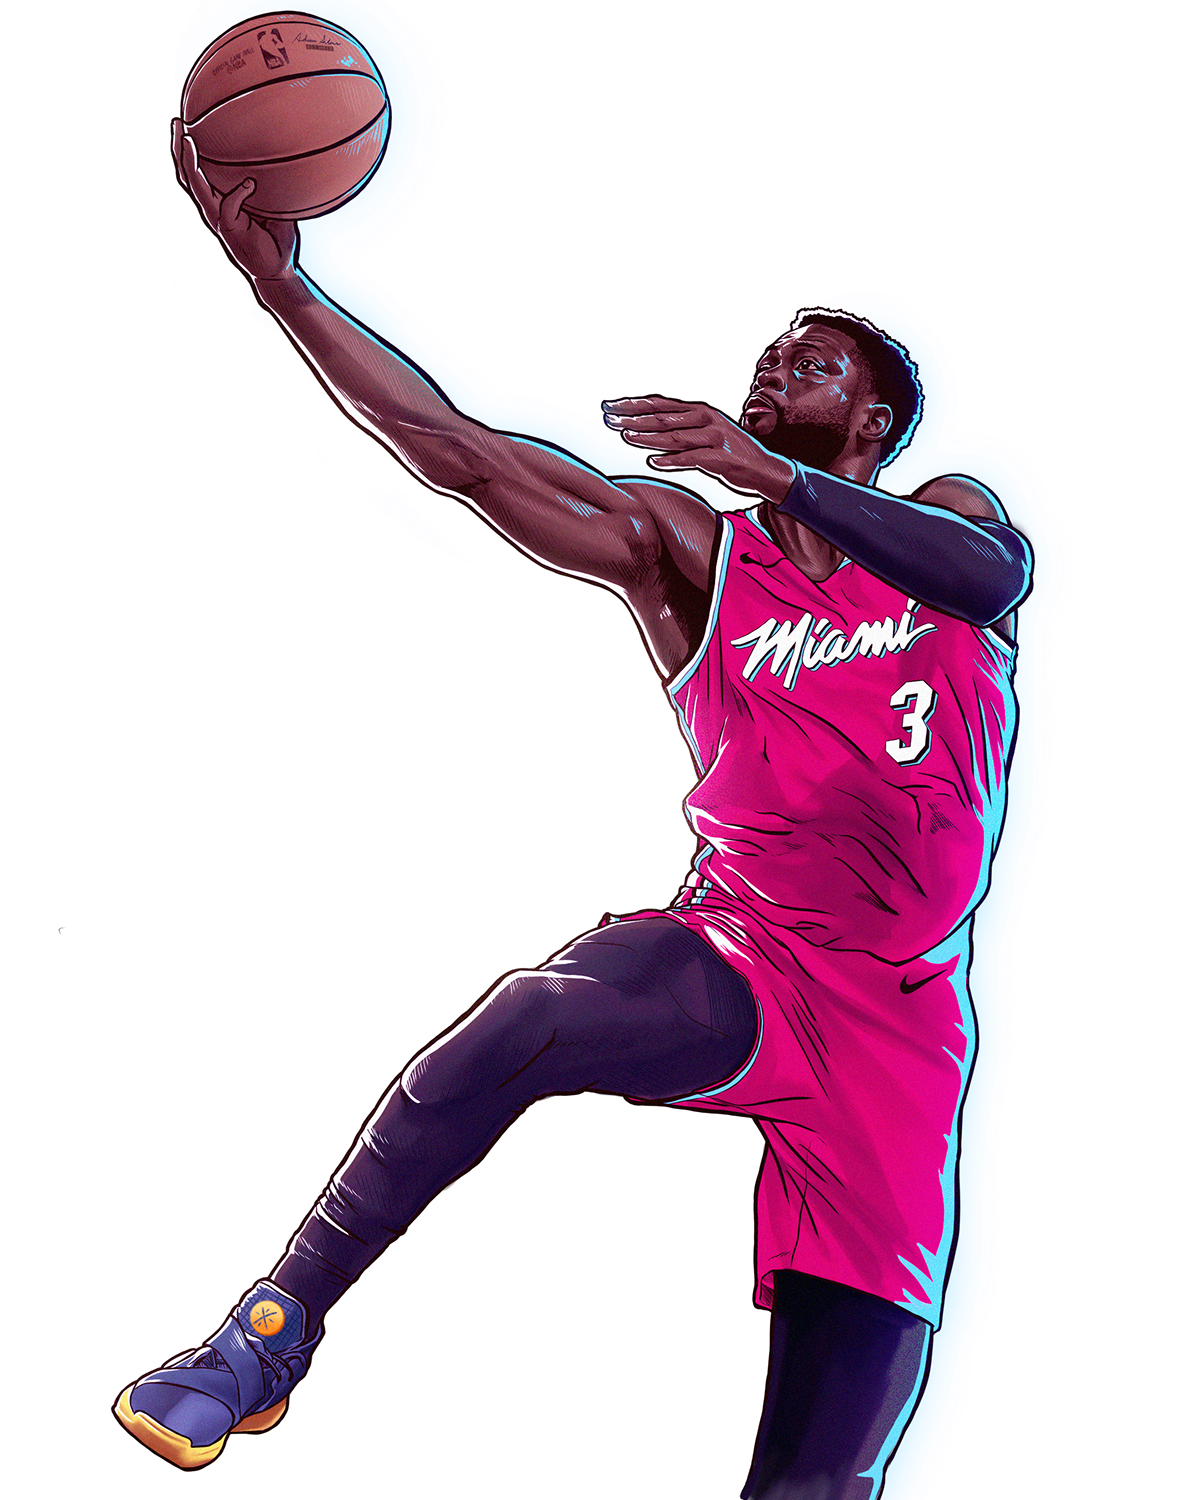 Nba Dwyane Wade Bday Illustration Miami Vice Edition On Behance Nba Basketball Art Dwyane Wade Basketball Players Nba